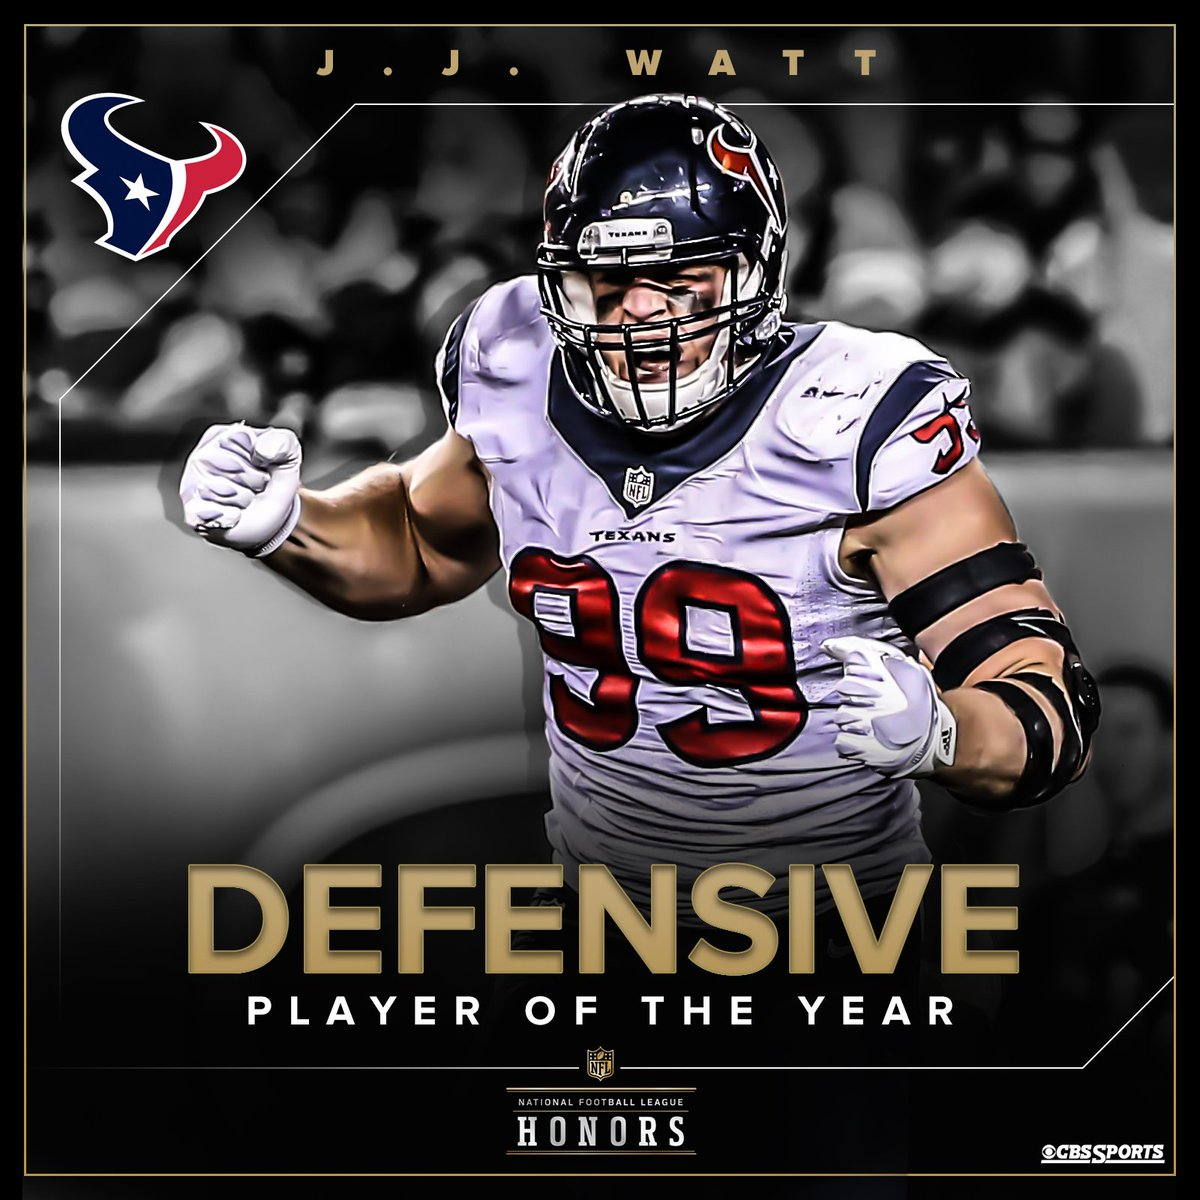 For the second straight year, nobody was able to wreak havoc on offenses quite like @HoustonTexans stud J.J. Watt.